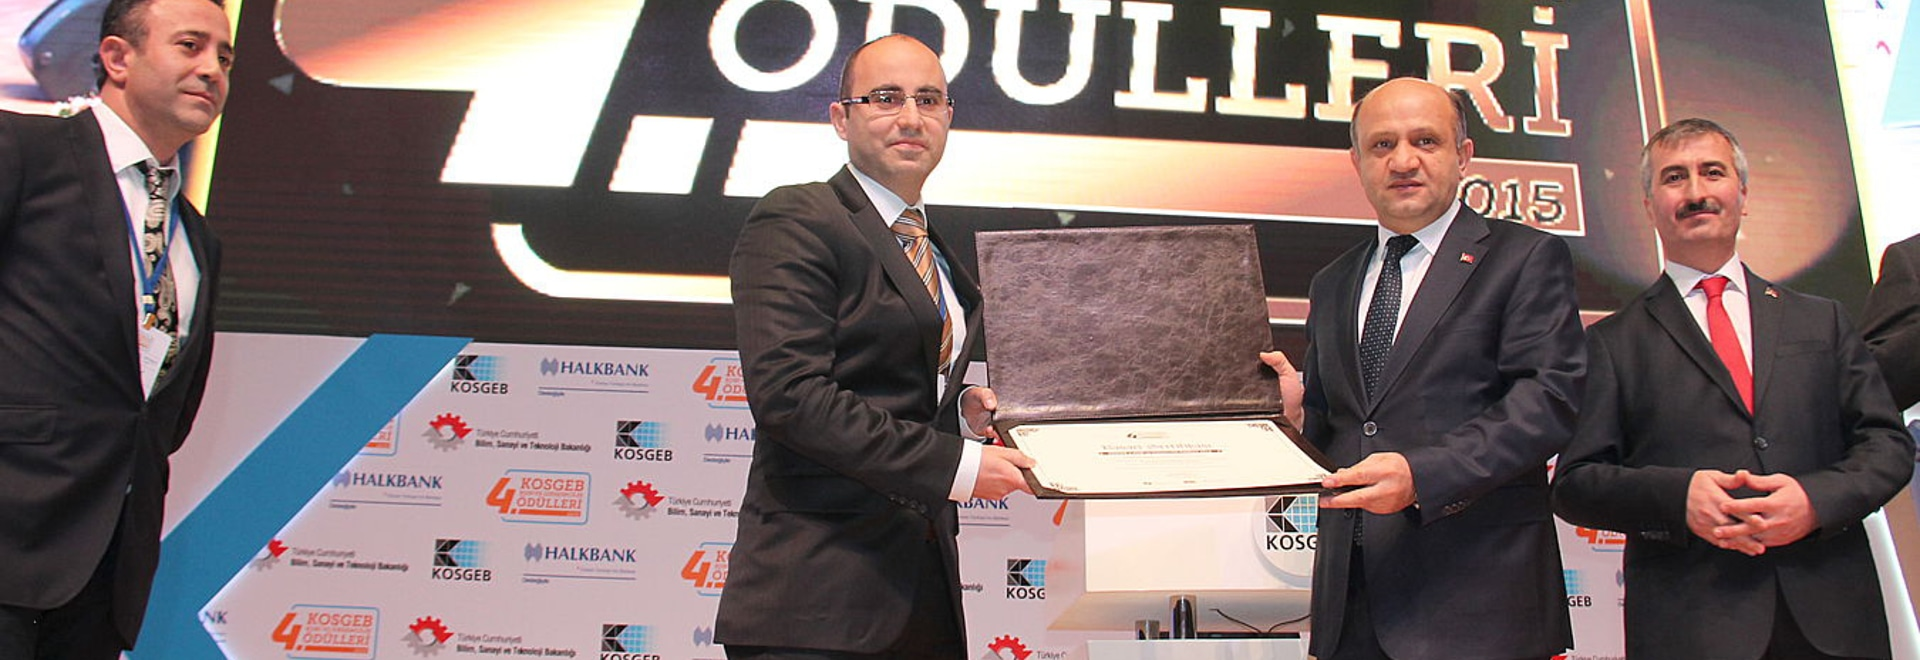 Makersan has been awarded as most innovative SME by turkish ministry of economy